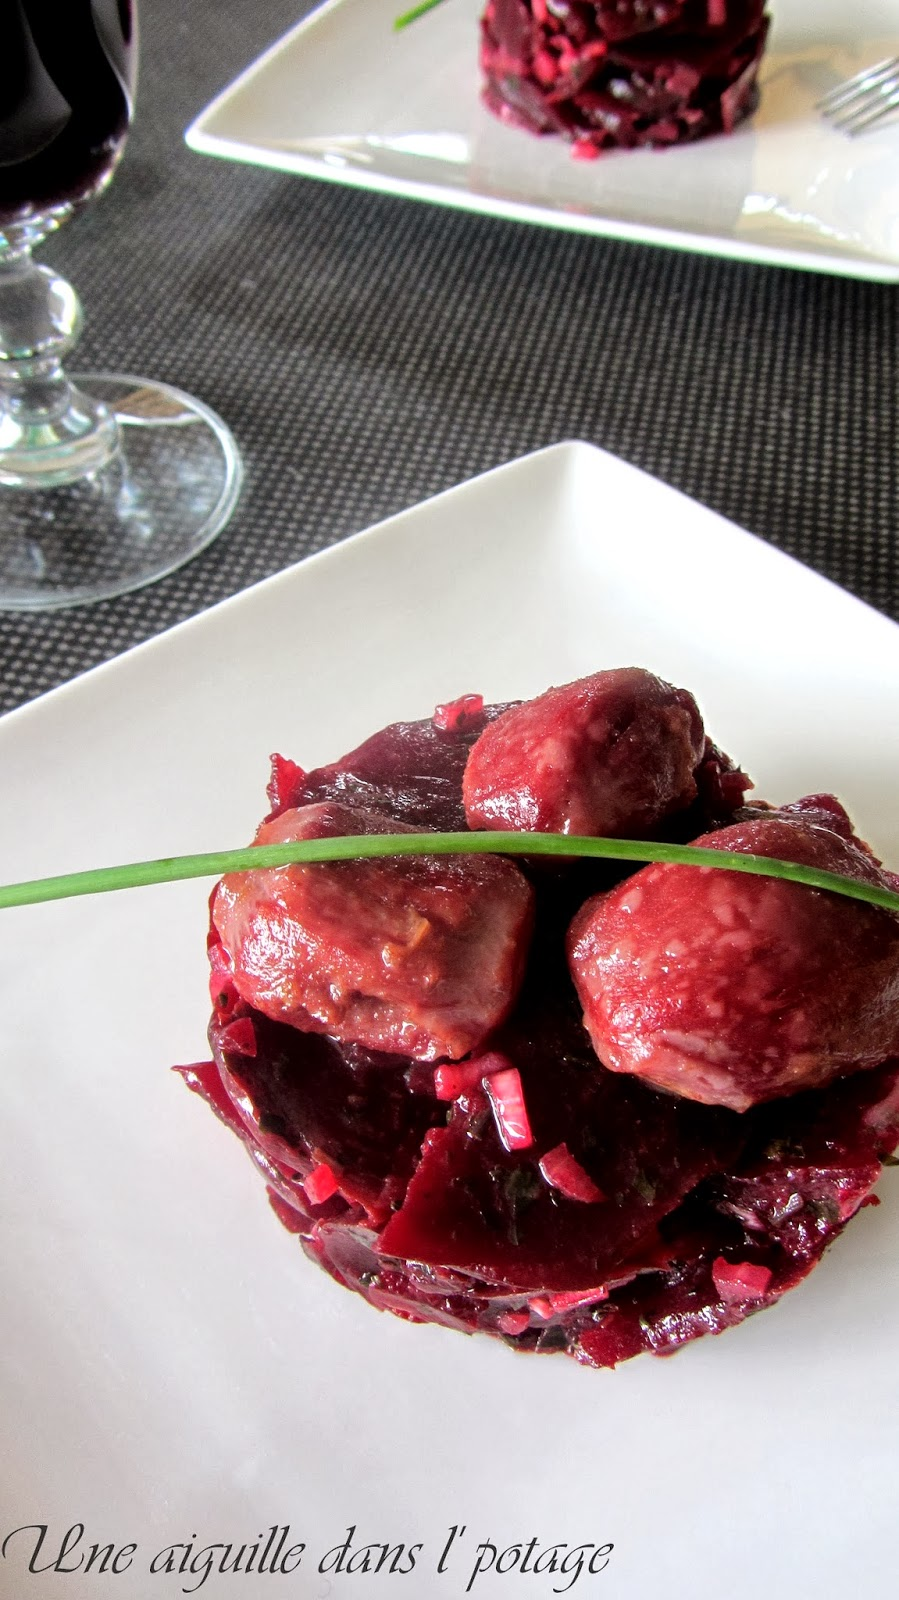 Beet salad with candied gizzards